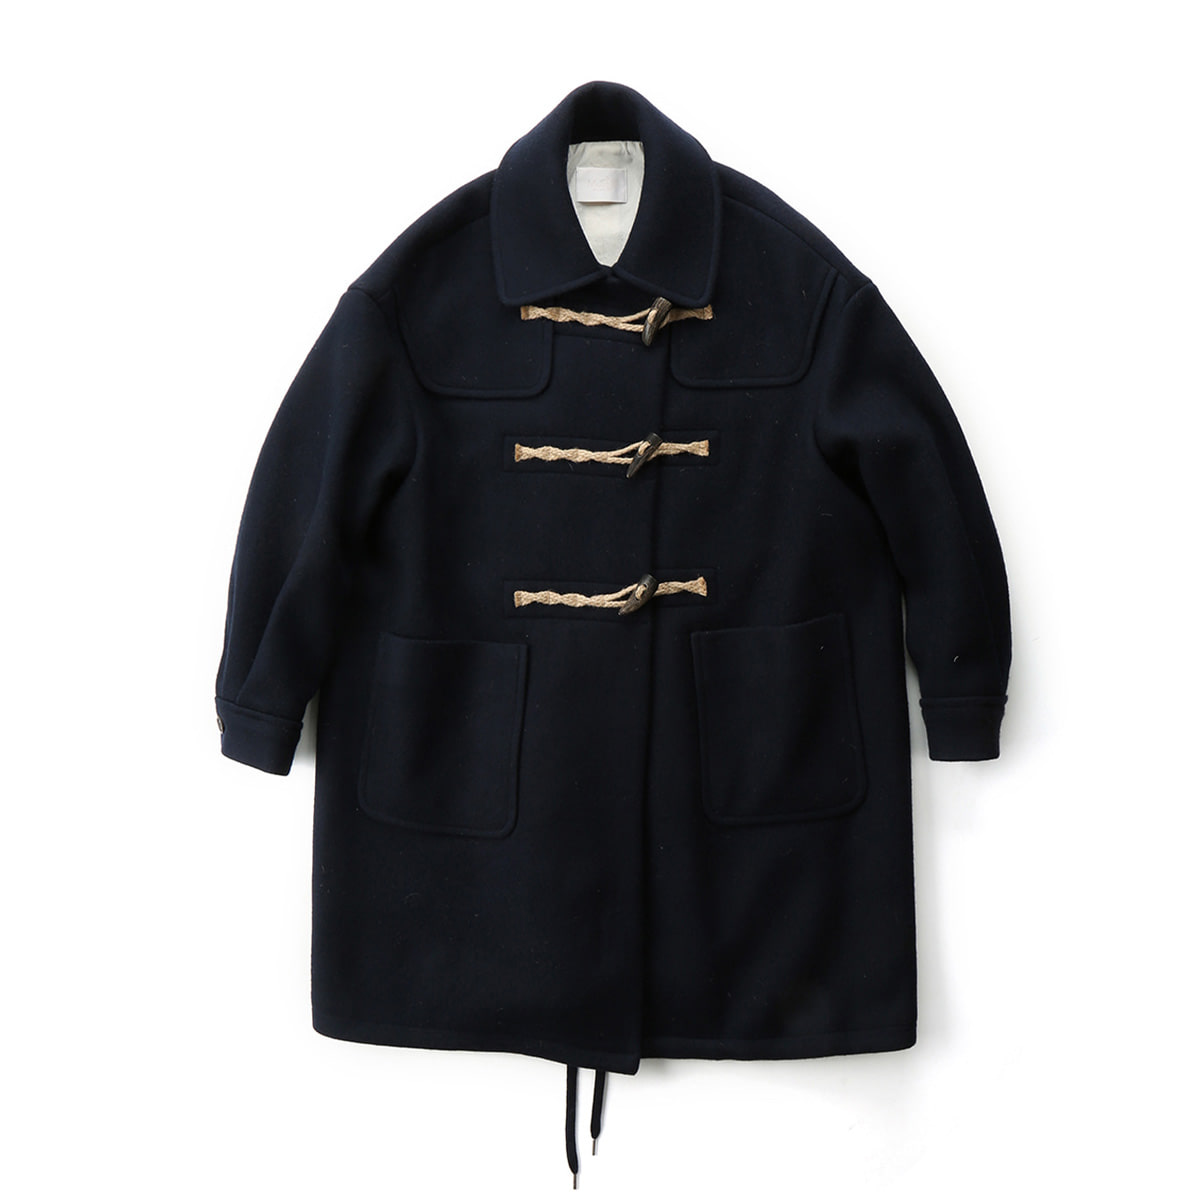 [MUSED] LAVE DE DUFFLE COAT 'NAVY SOLID'